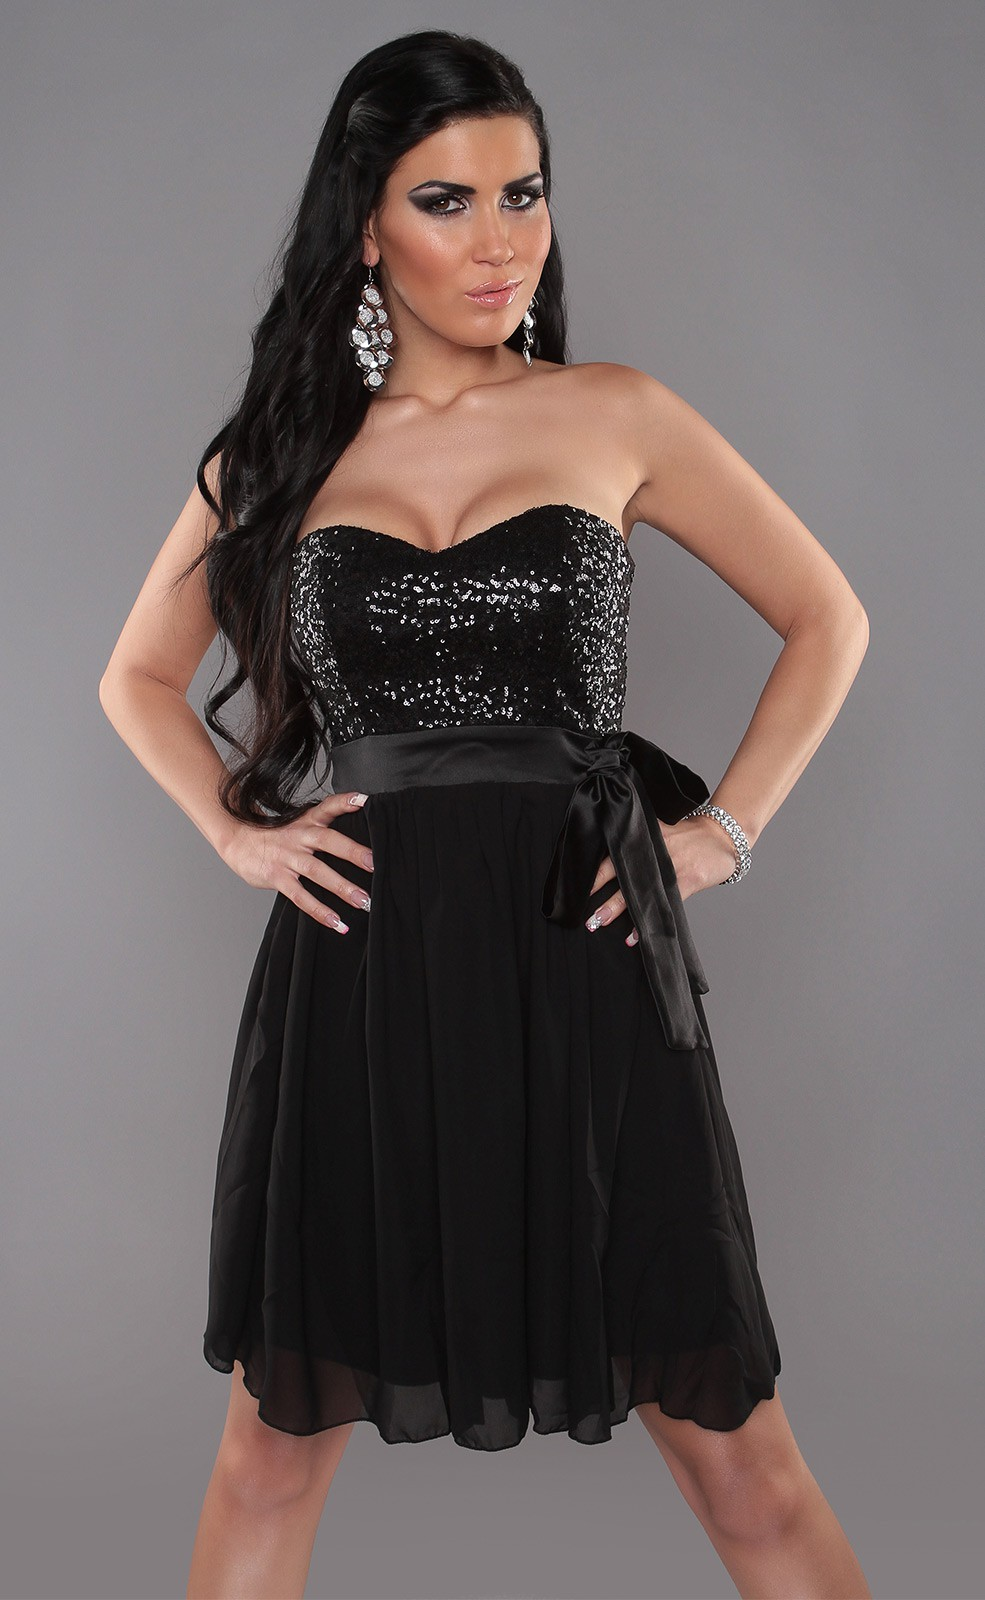 Black Sexy Bandeau Dress With Sequins And Loop